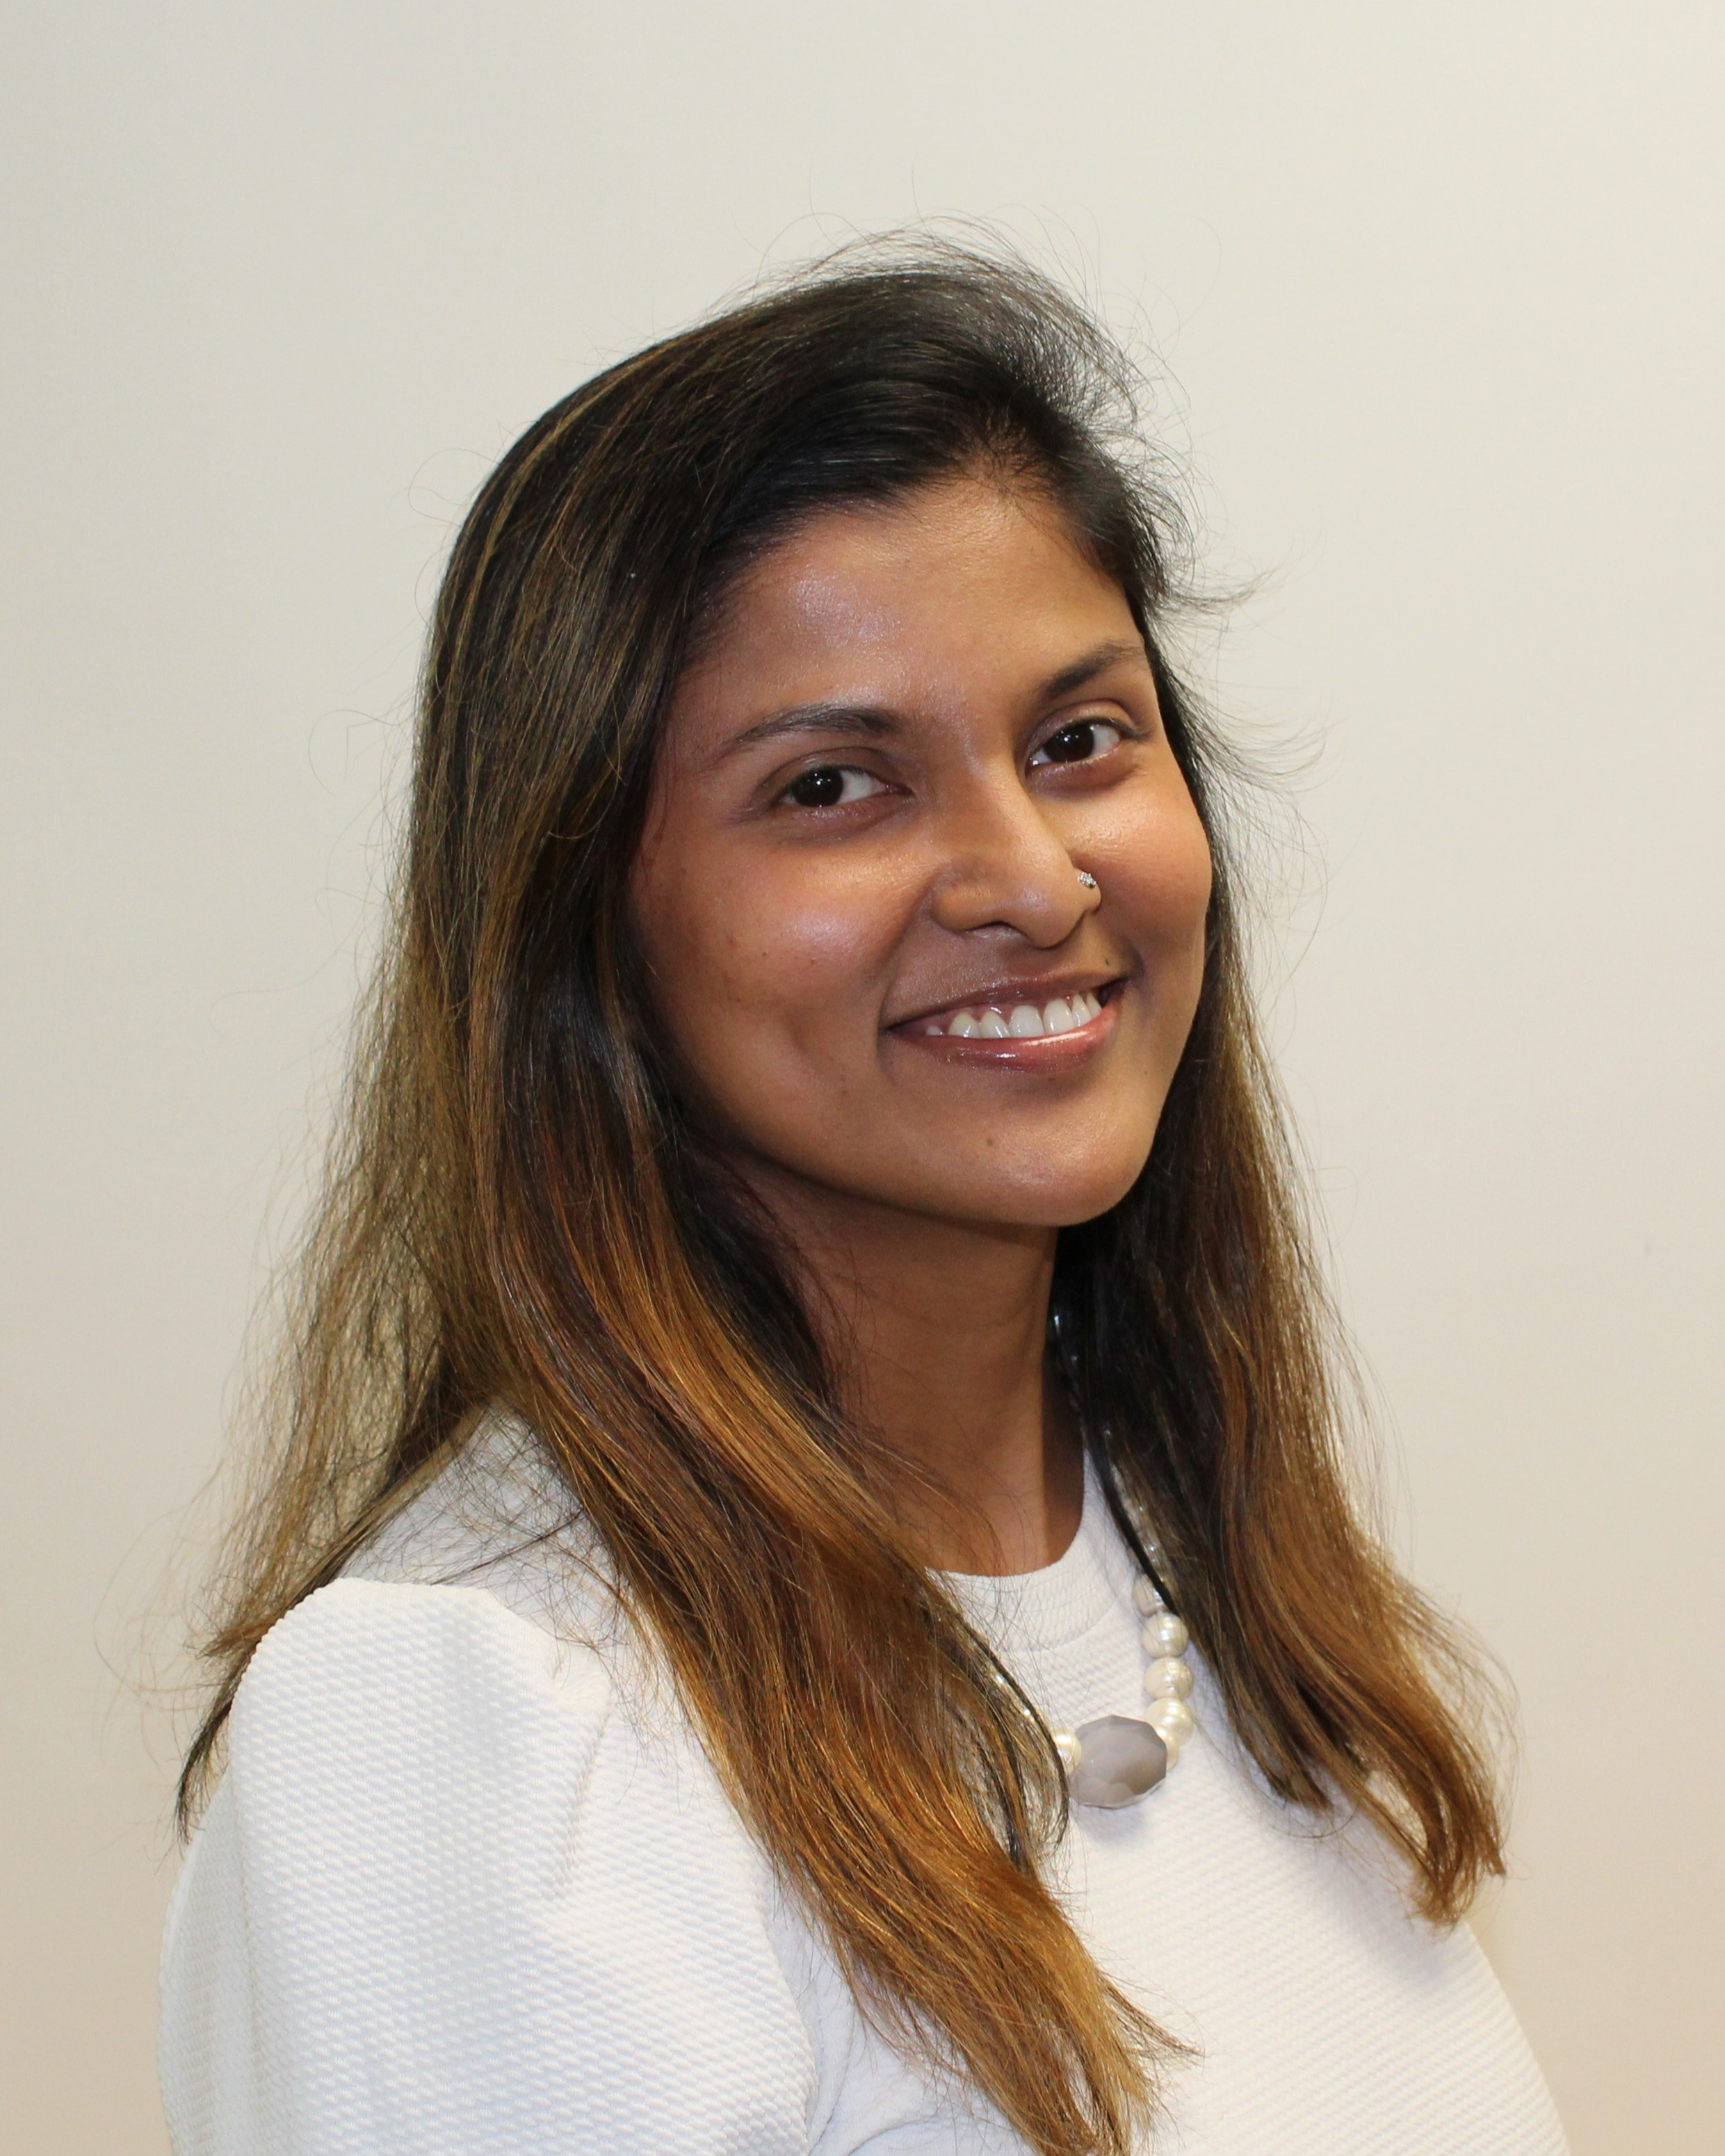 Shalini Noronha, Social Worker   Shalini Noronha joined the Ishar team in February 2018 as the Yoga teacher. Following this, she volunteered with Ishar as a Social Worker and then formally acquired the role in September 2018. Shalini holds a Masters of Social Work and a Bachelor's Degree in Commerce which she completed in India. She also has completed the Yoga Teacher's Training Course from India. Shalini has over 10 years of experience working in the development sector, with a major focus on women and children.  Shalini speaks English, Hindi, Urdu, and Marathi and in her spare time enjoys spending time with her young family, reading, cooking, traveling, and of course, yoga.